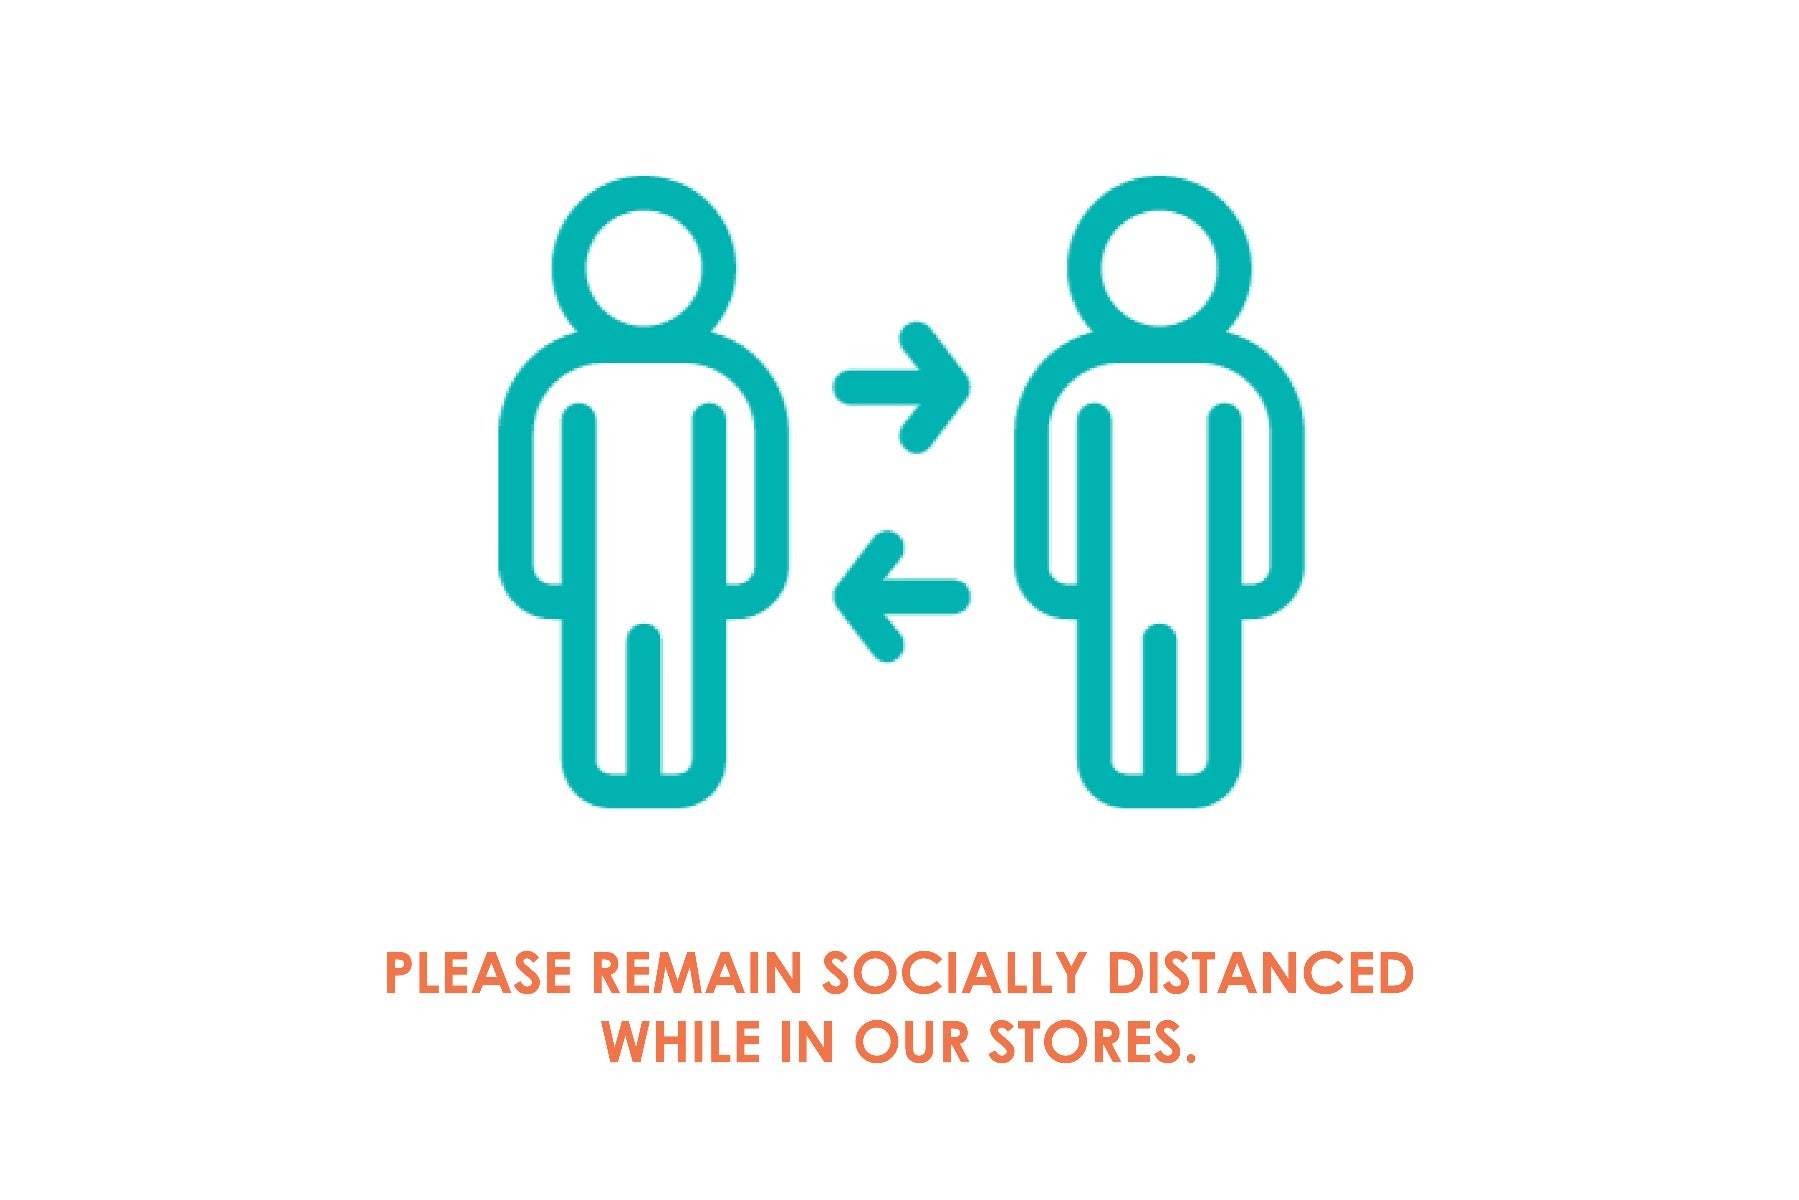 Please remain socially distances while in our stores.